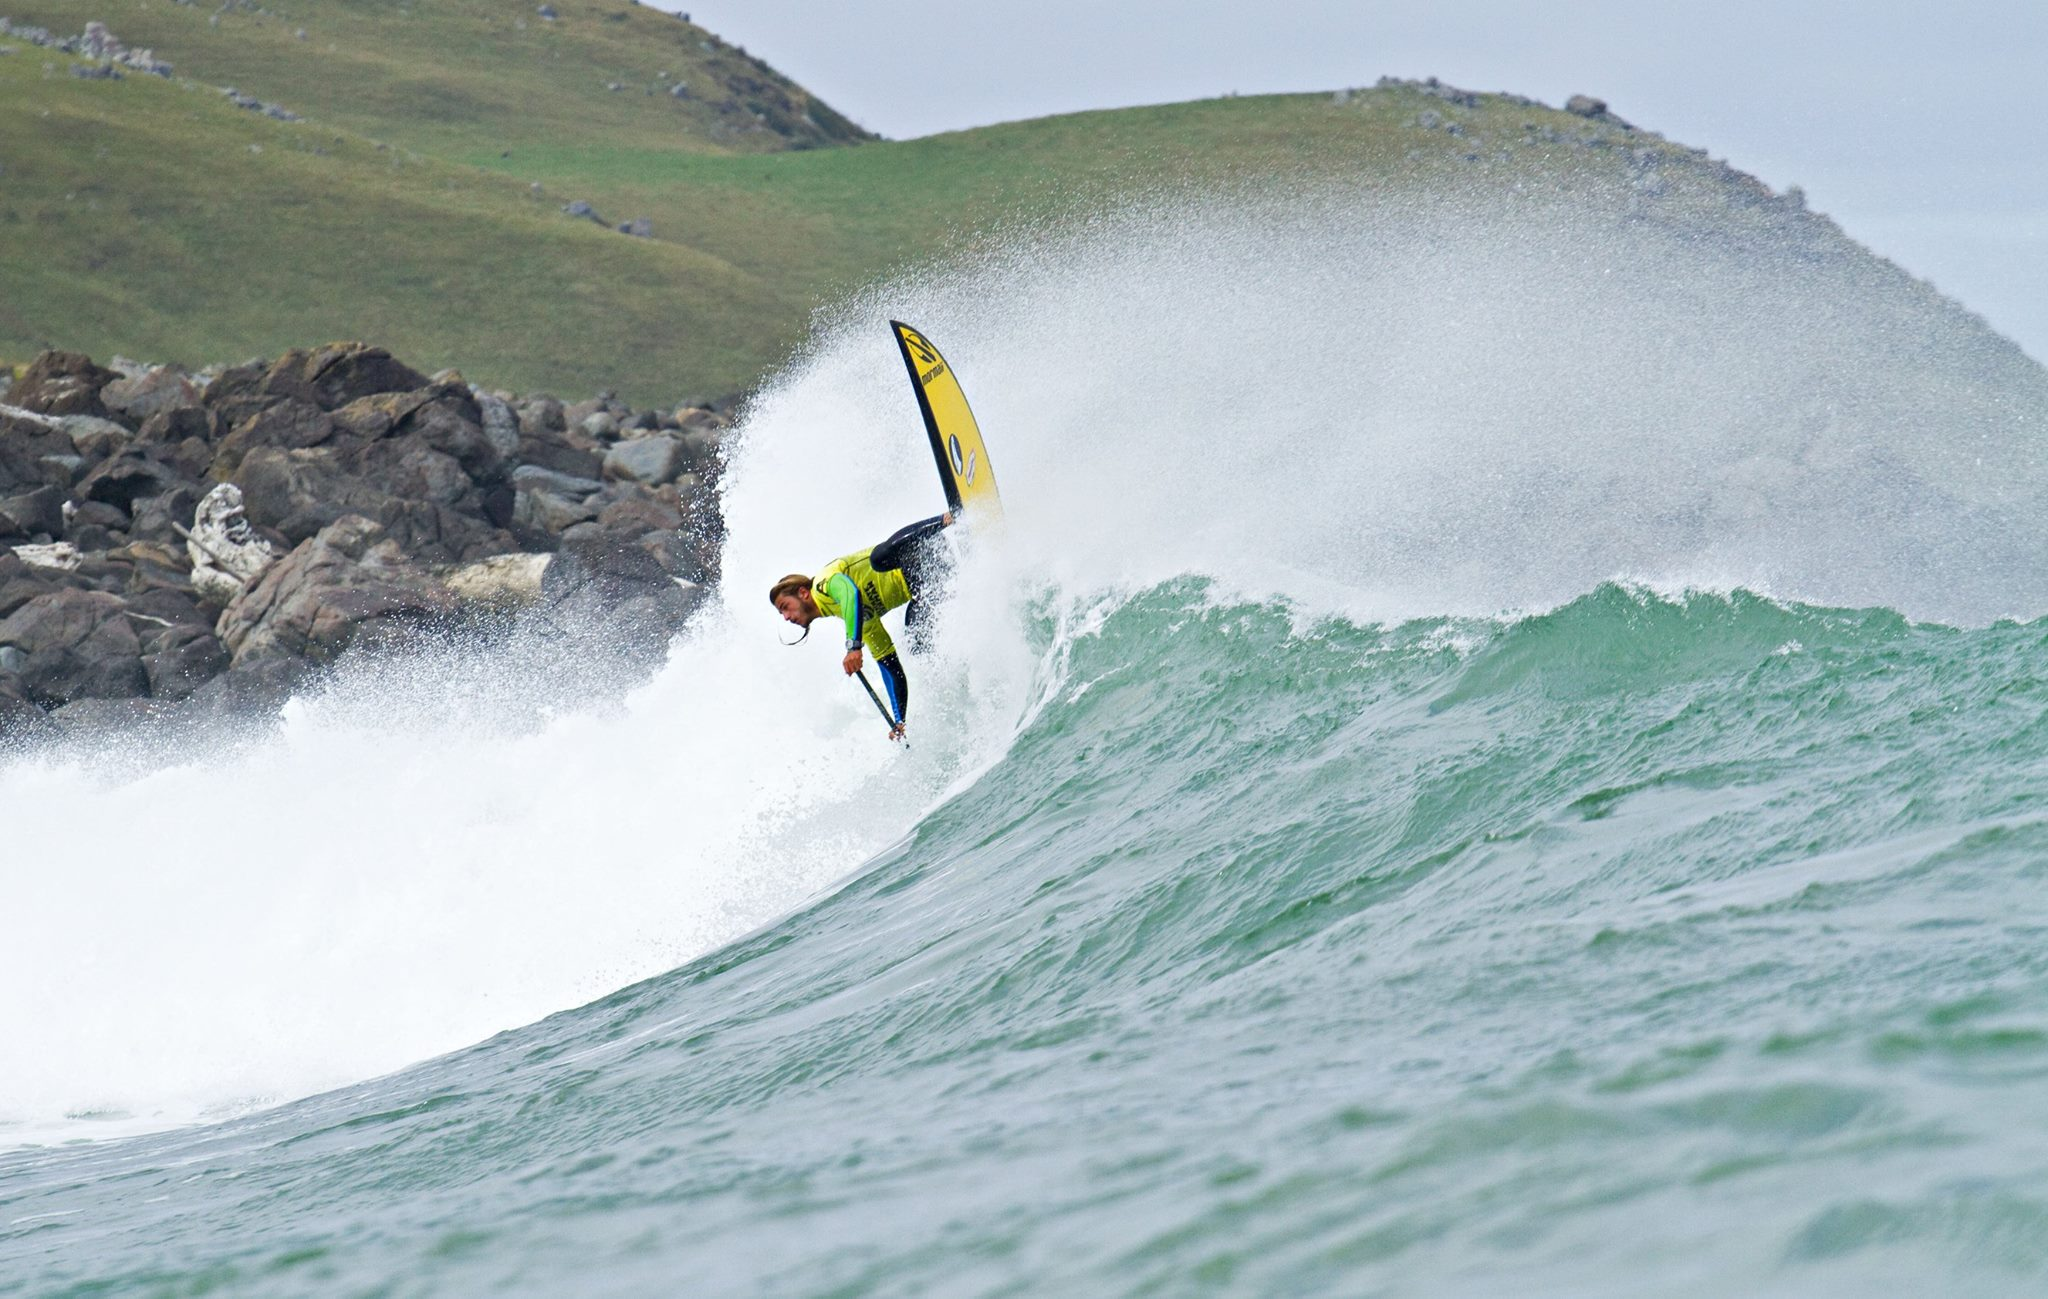 Caio Vaz | Image courtesy of Cory Scott 1